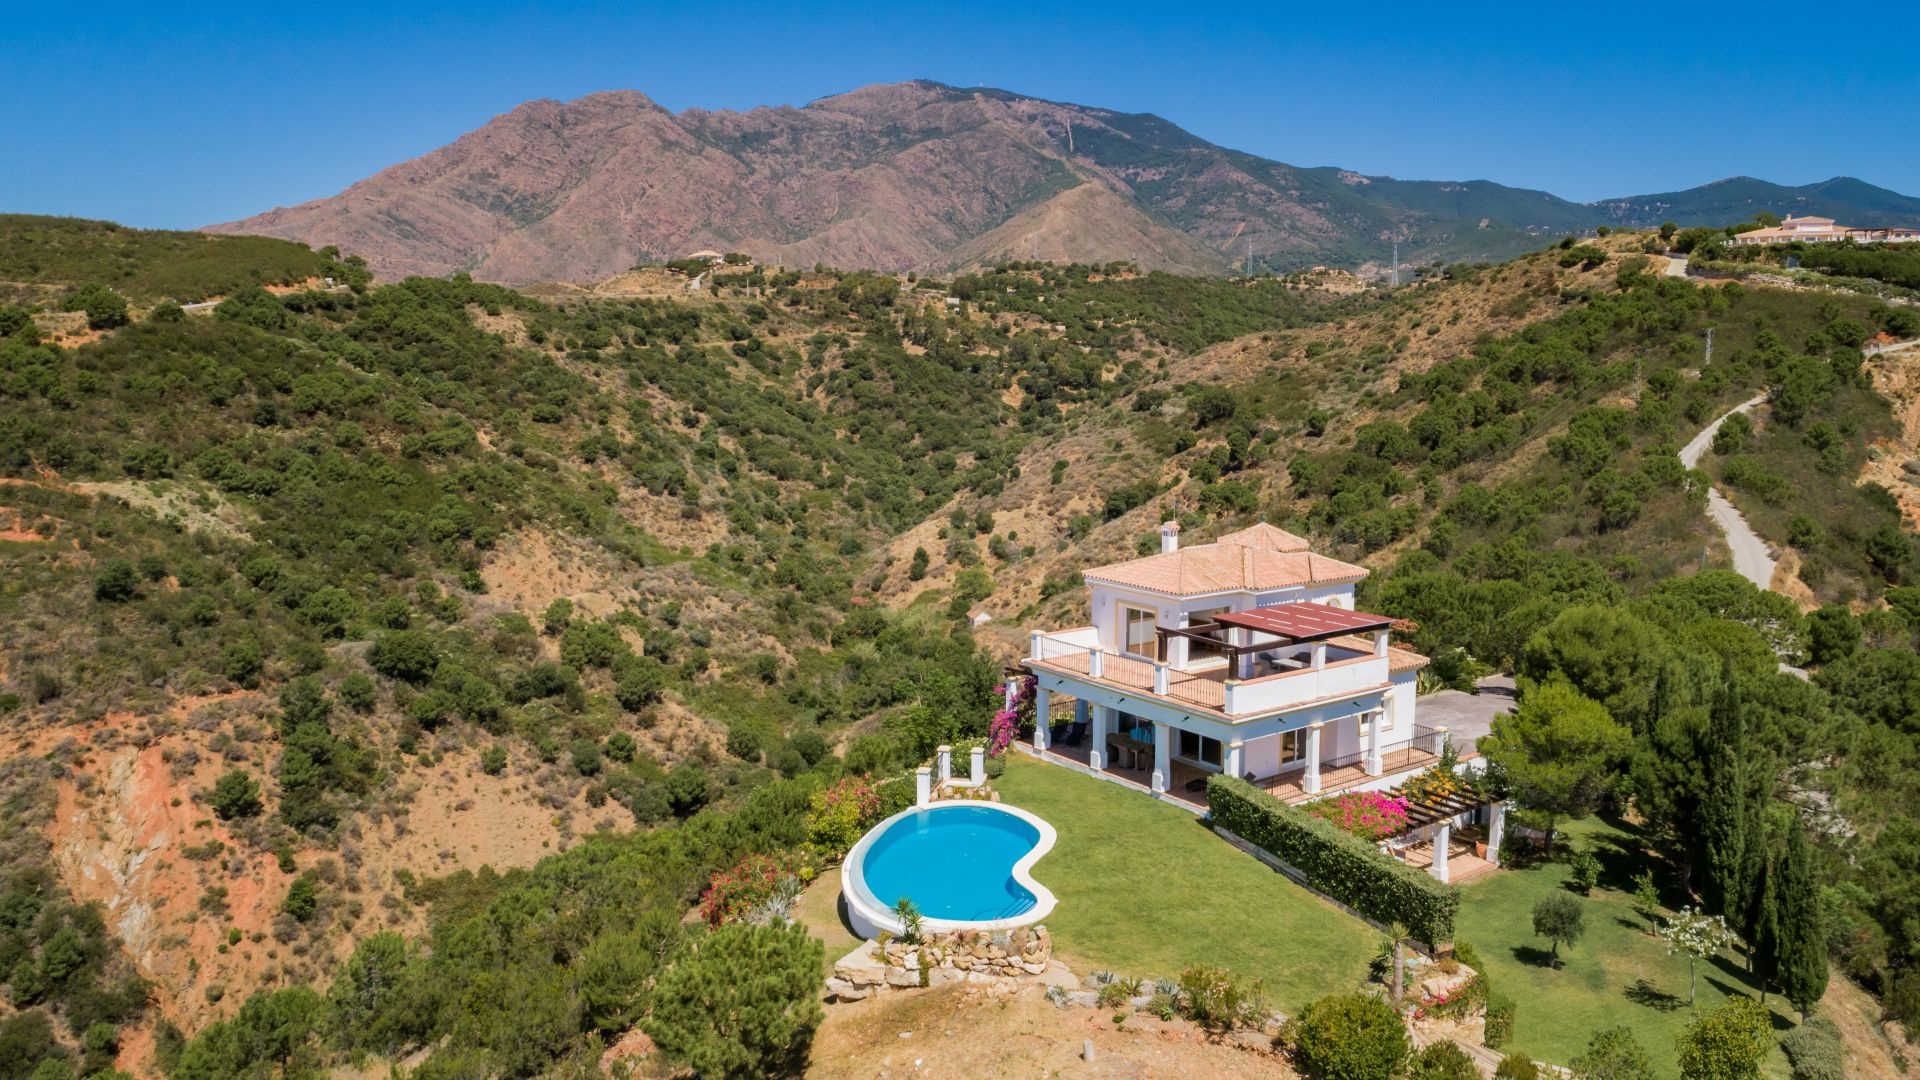 Now is the time to buy a house in Spain: Advice for buyers